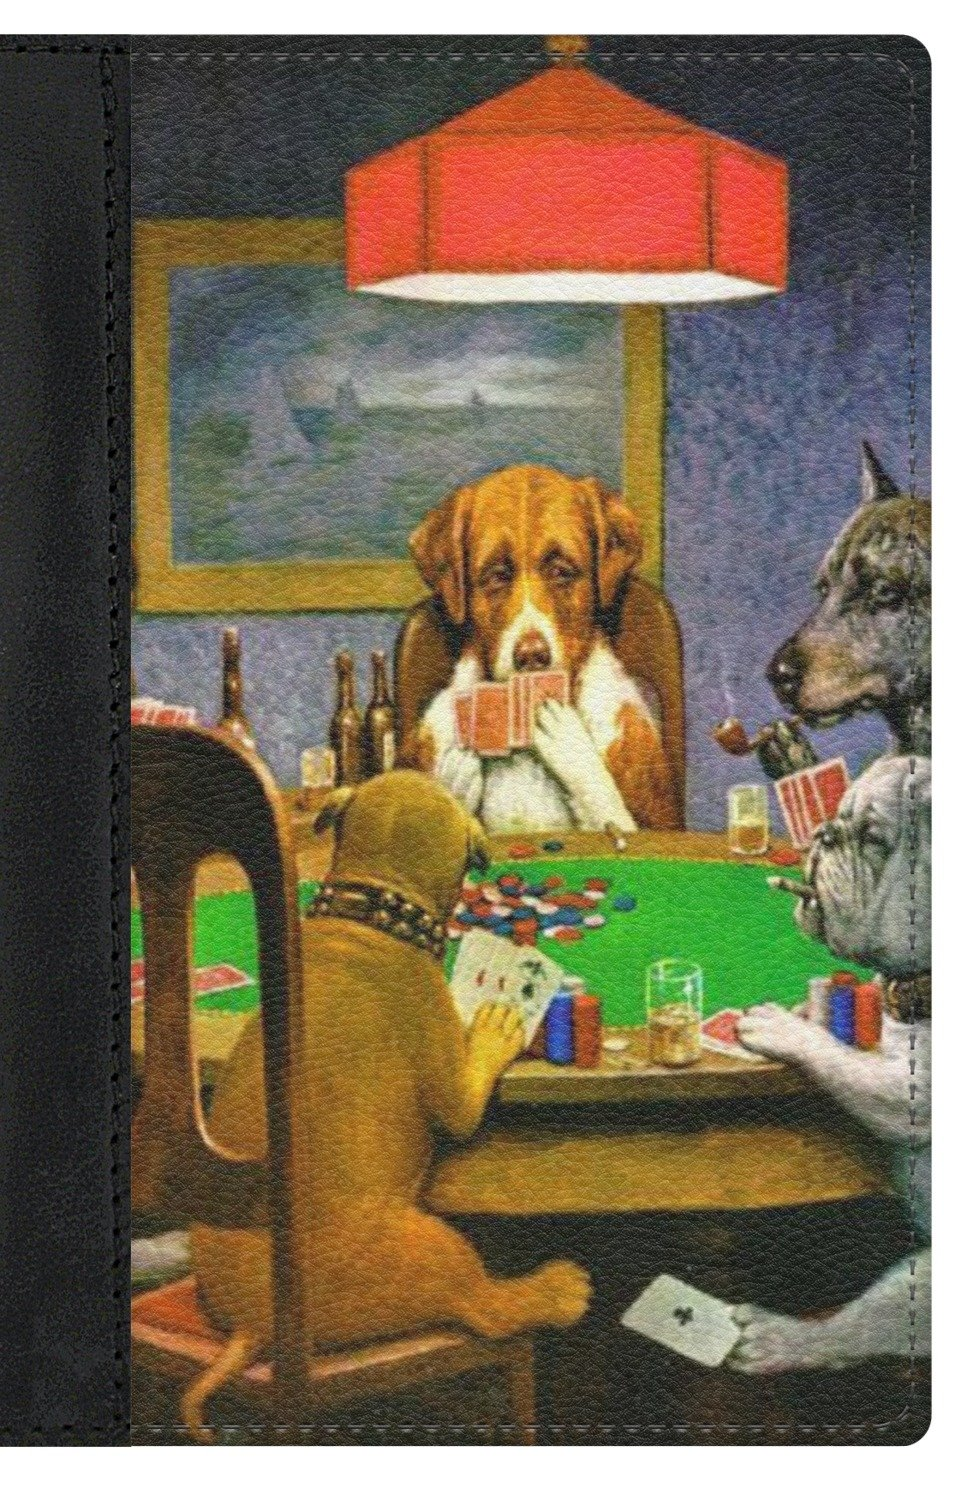 Dogs Playing Poker by C.M.Coolidge Genuine Leather Passport Cover